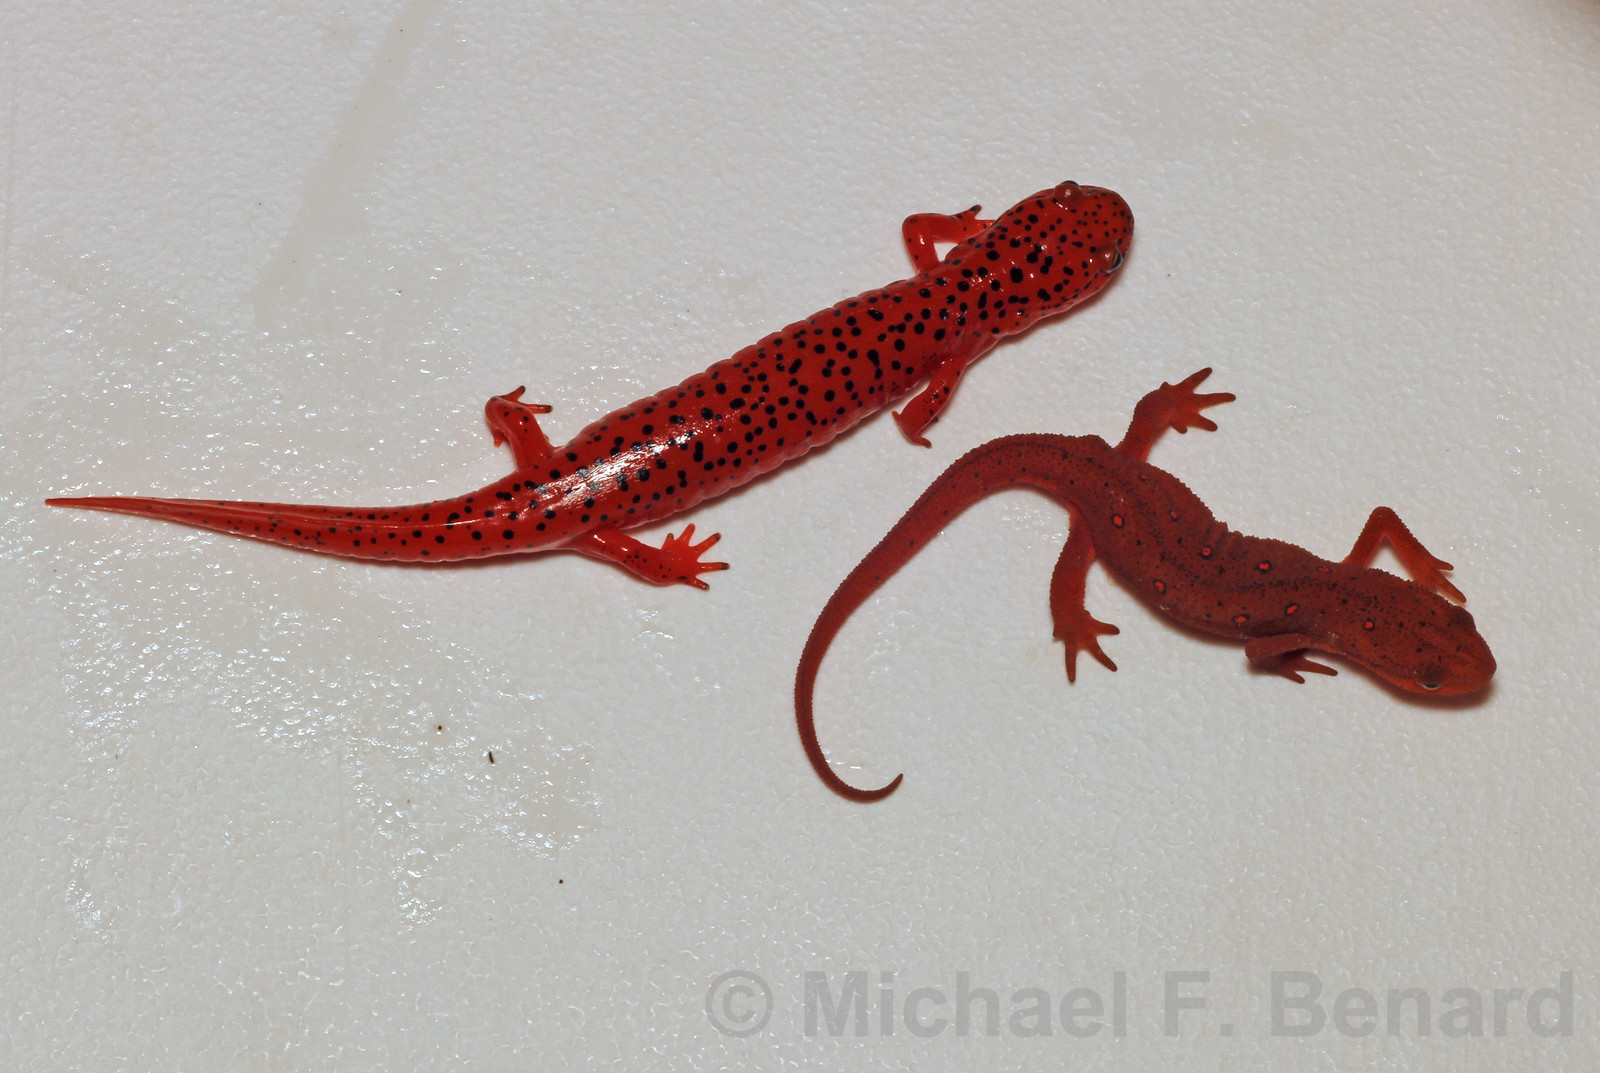 Red Salamander and Red Eft